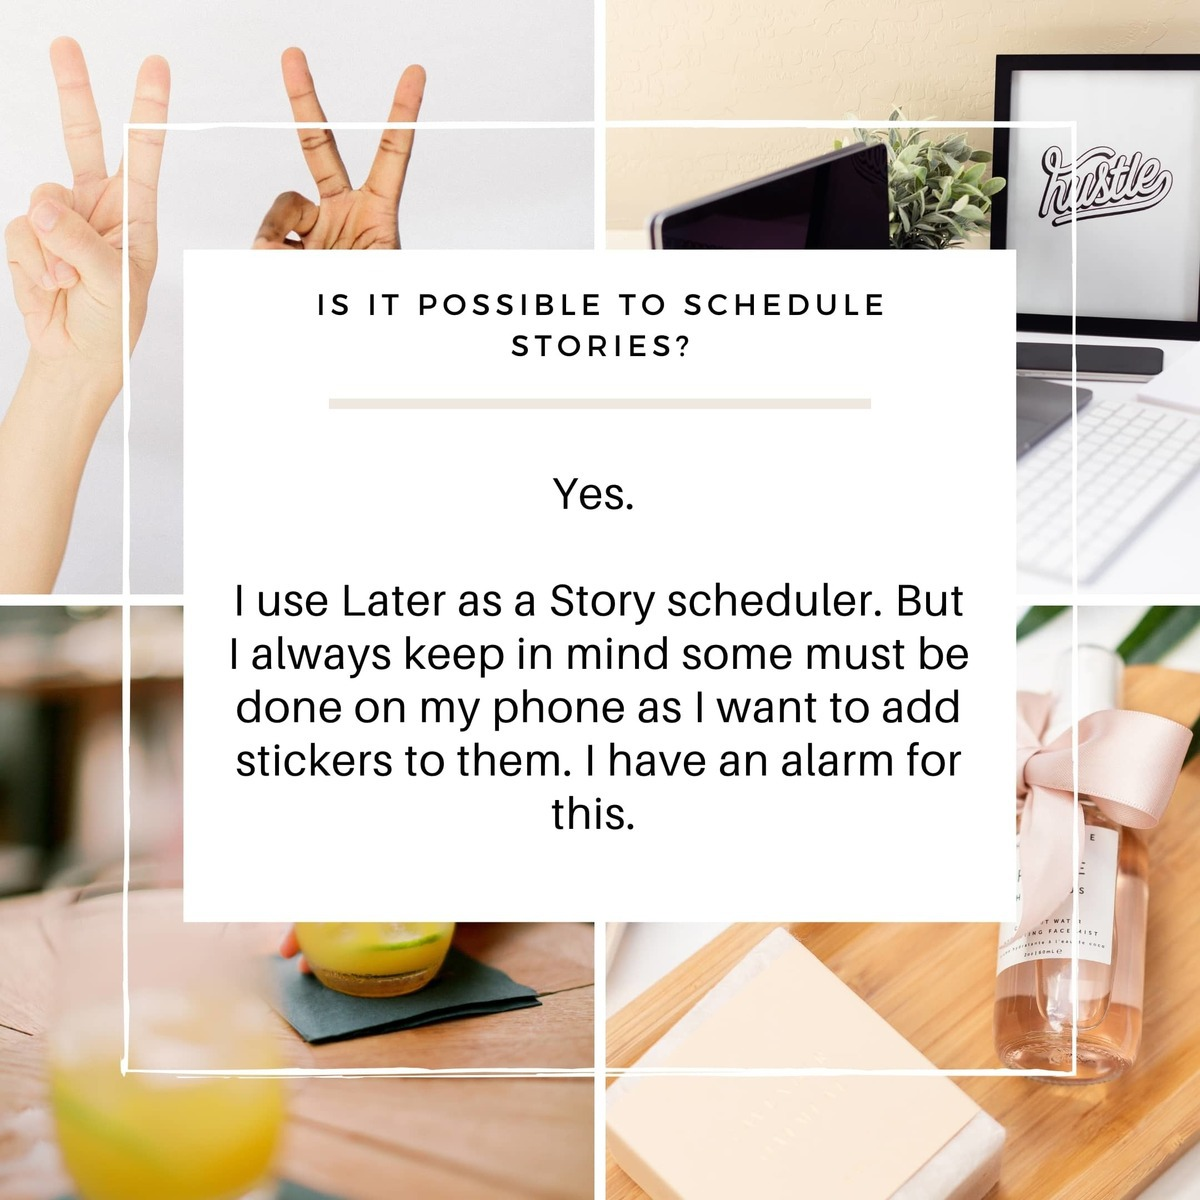 You can schedule your stories through a third party app like Later